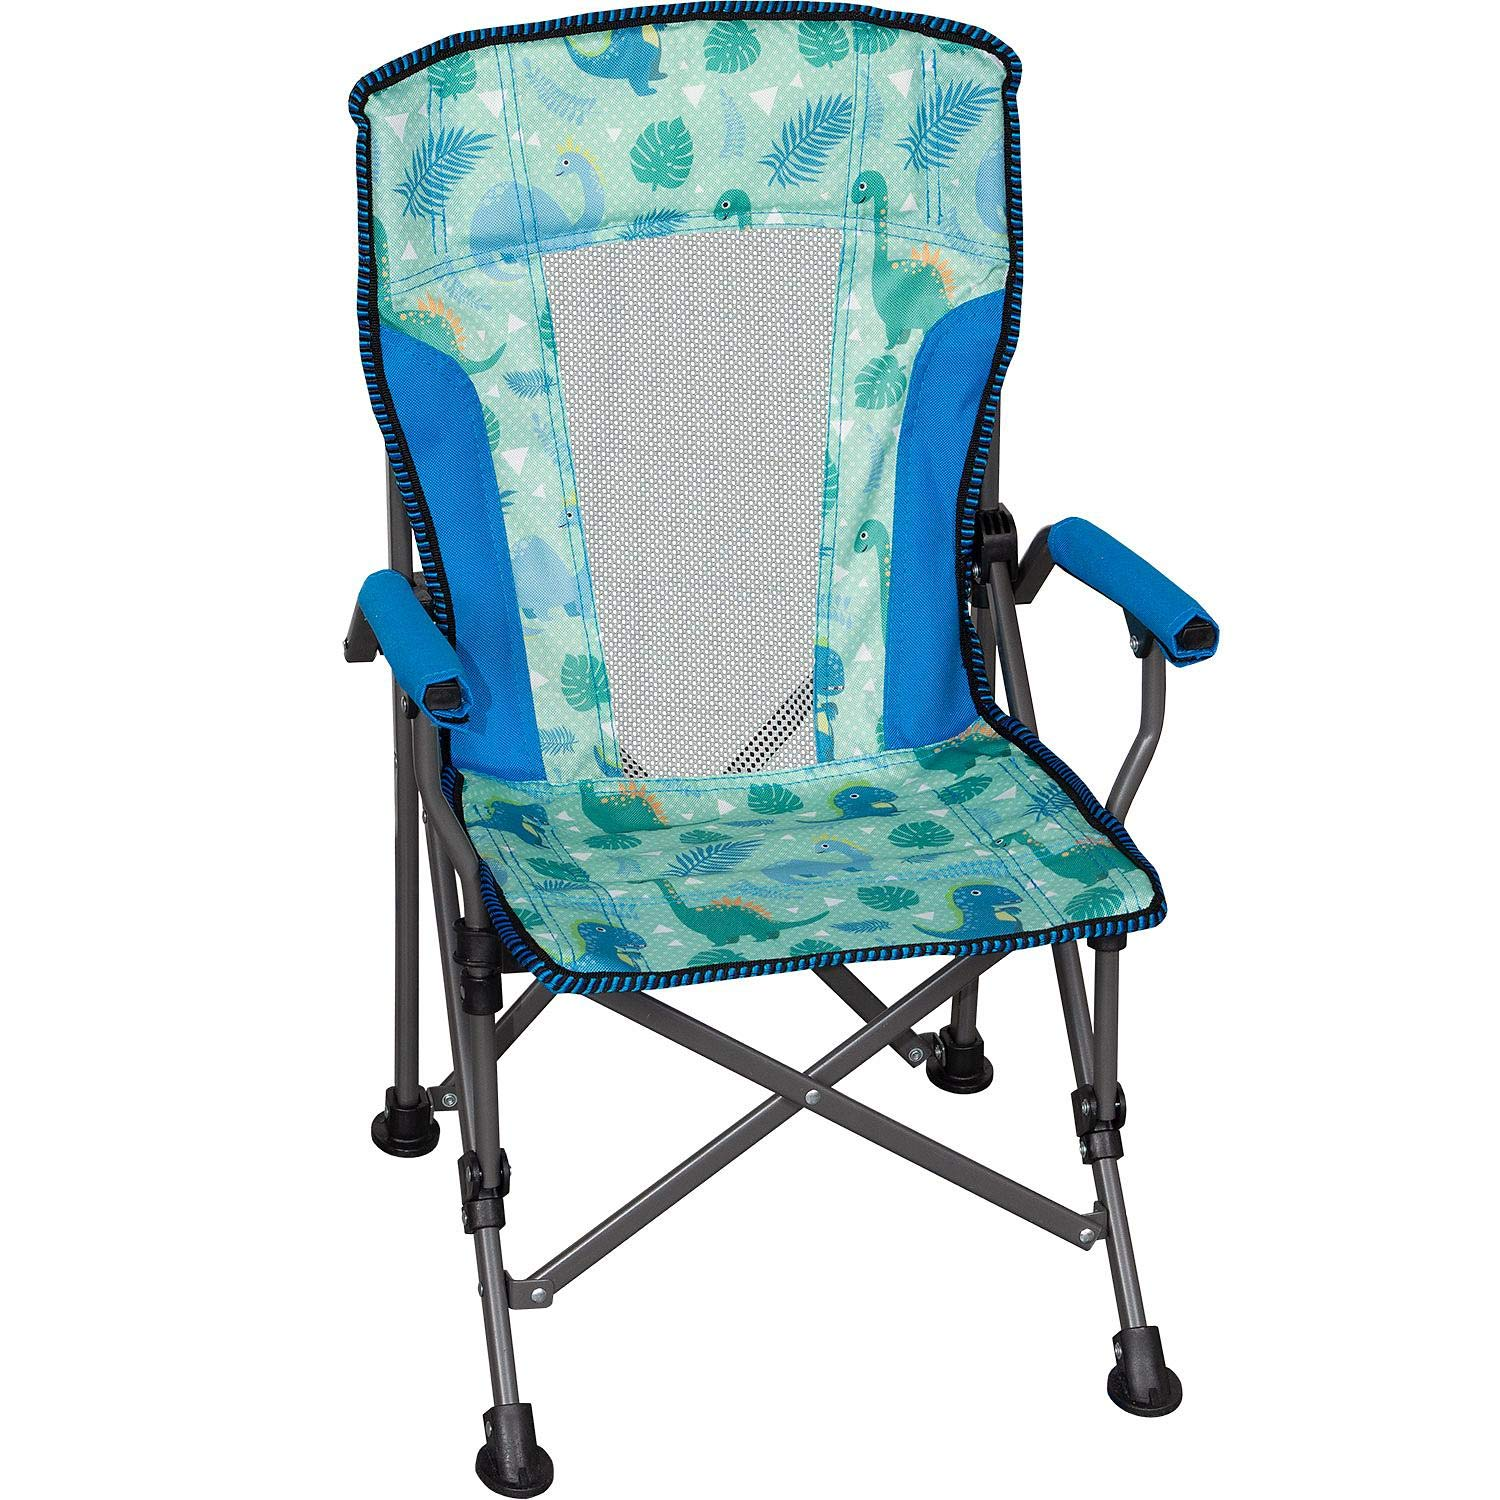 Member's Mark Kids' Folding Portable Light Weight Arm Chair with Matching Storage Bag & Carrying Strap (Dinosaur) by Members Mark